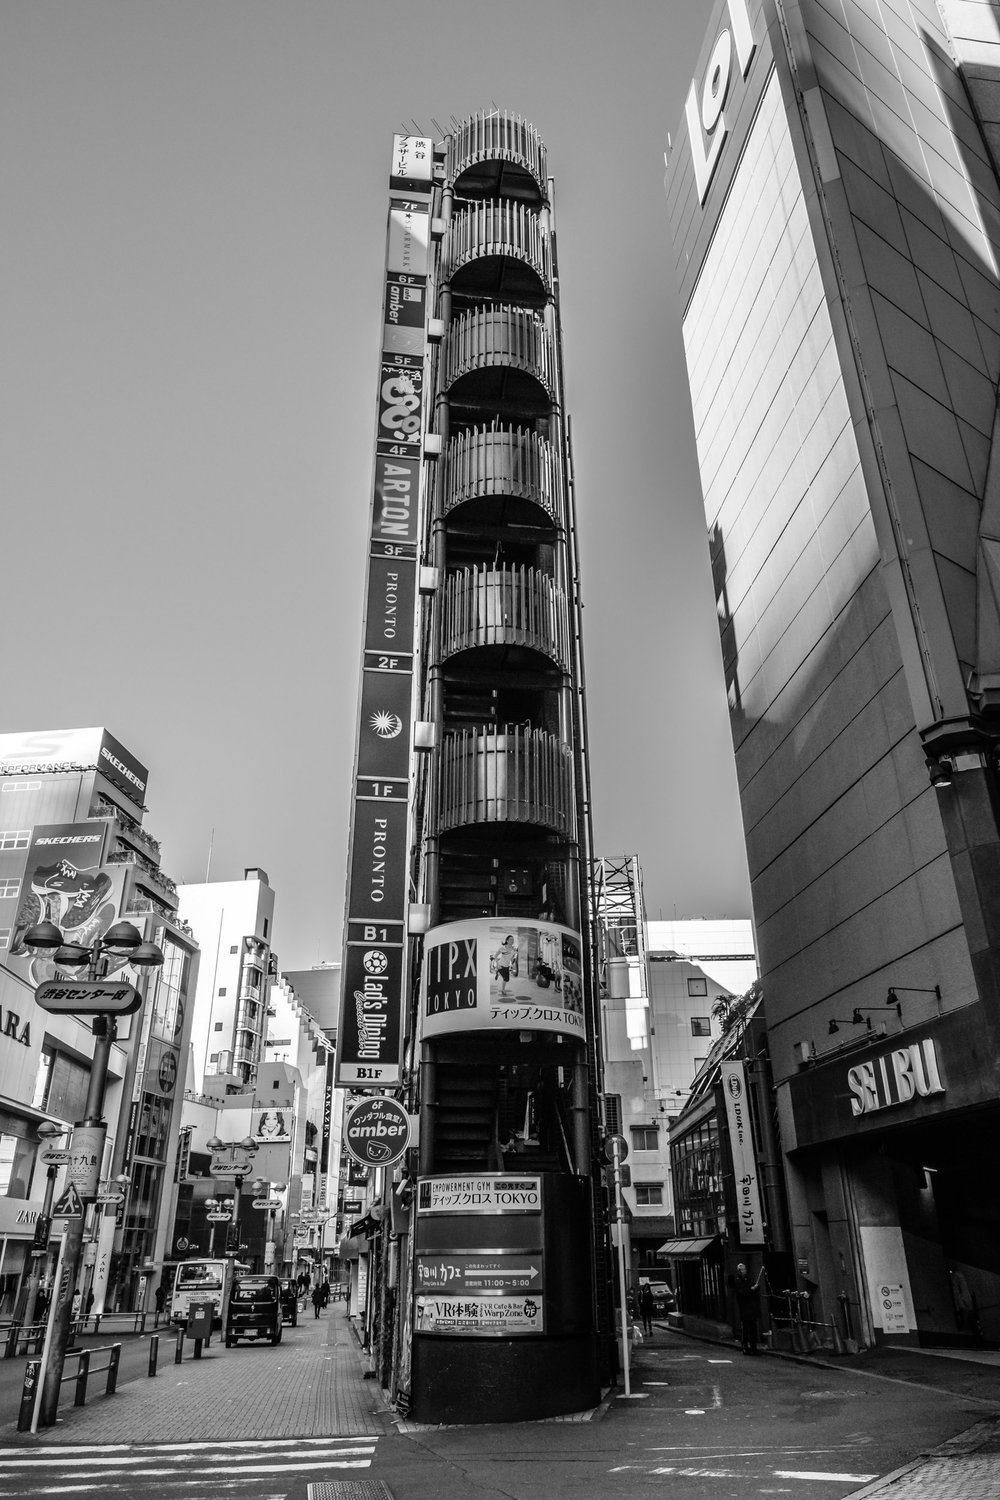 Shibuya also has some very skinny buildings